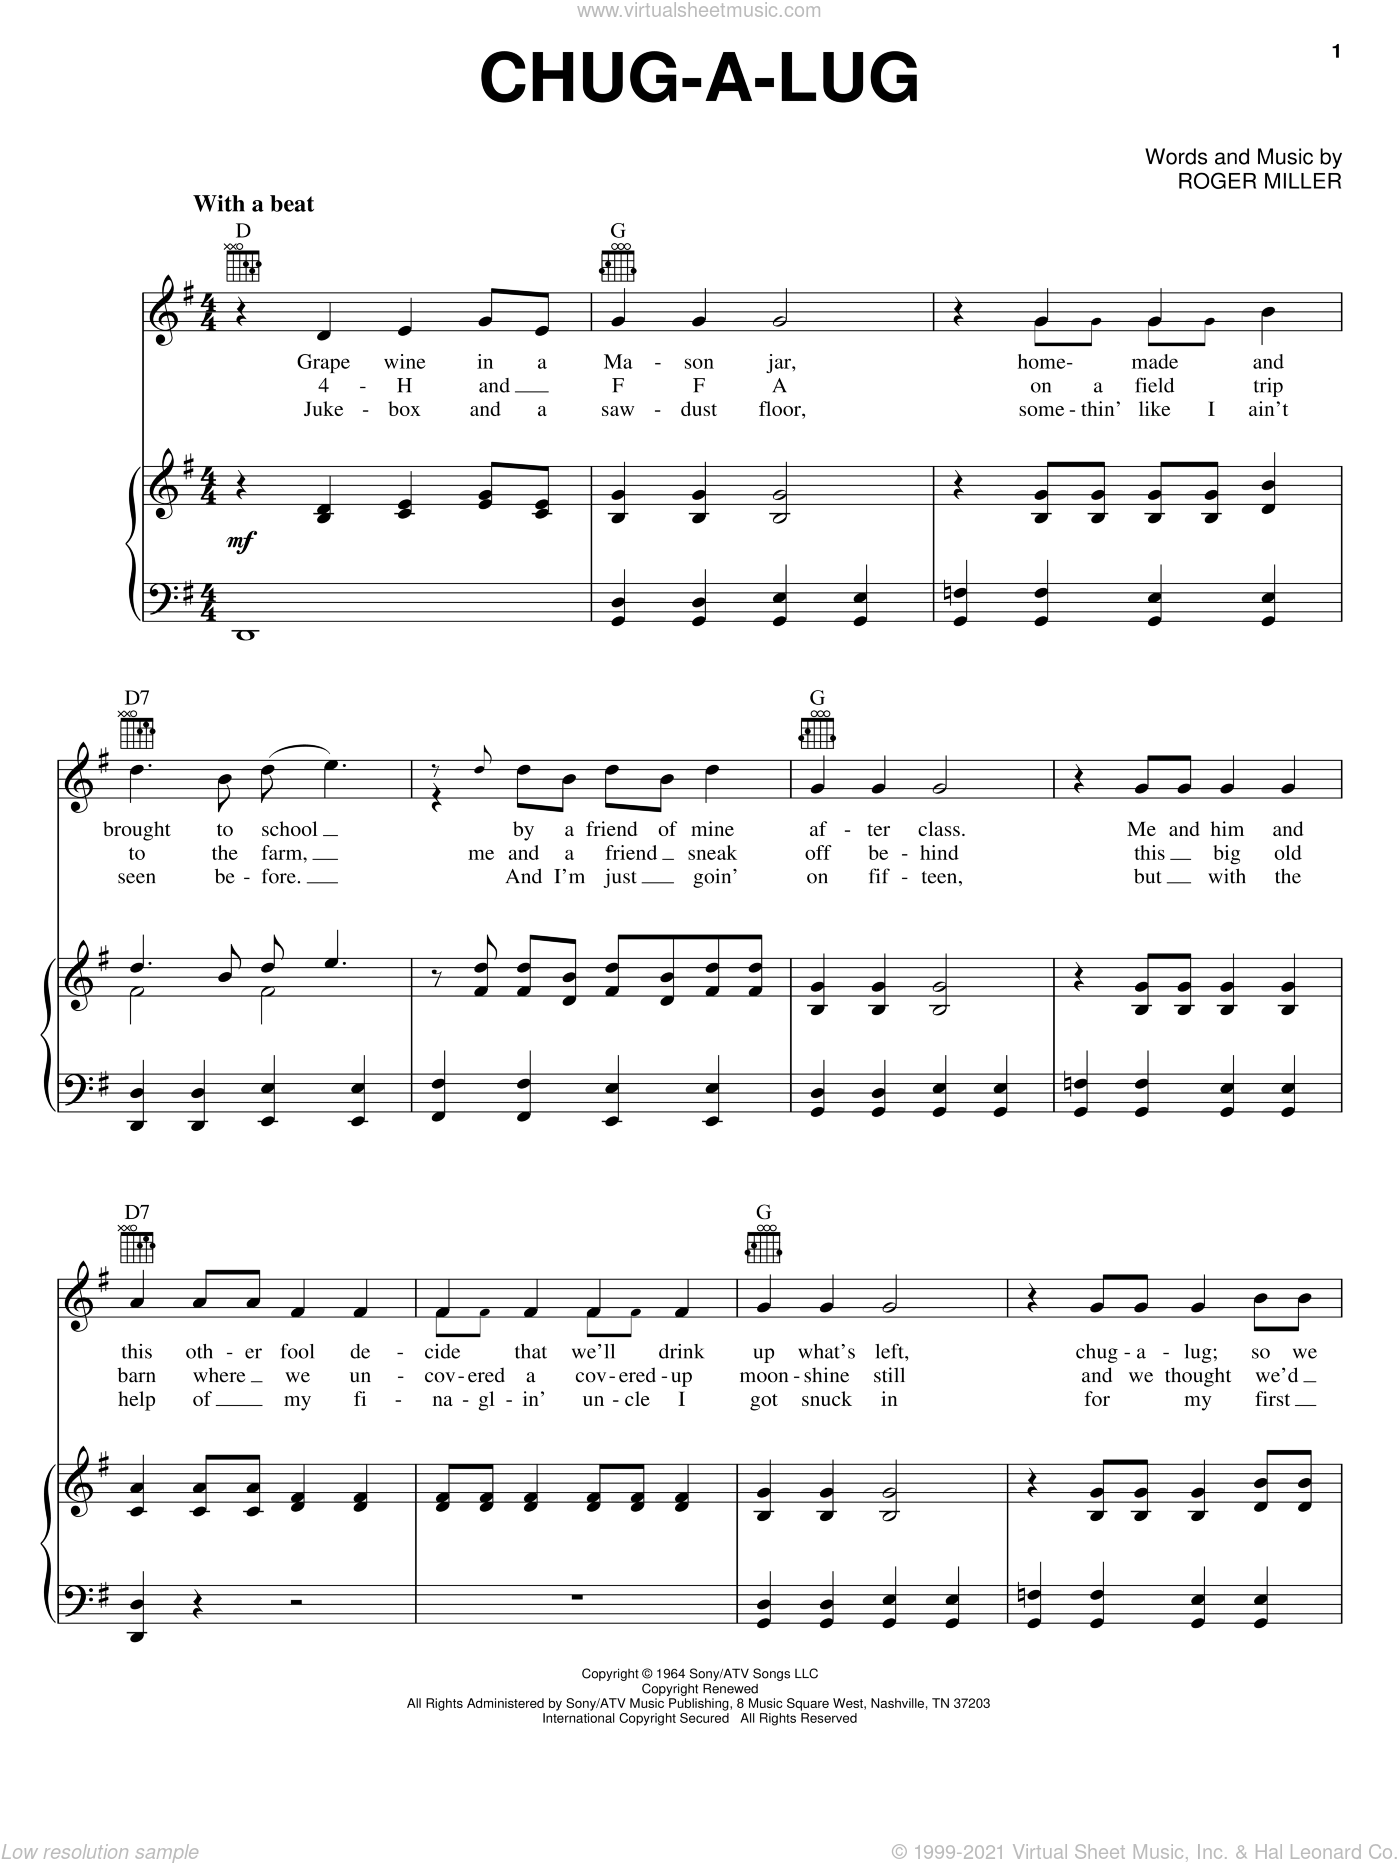 Chug-A-Lug sheet music for voice, piano or guitar by Roger Miller